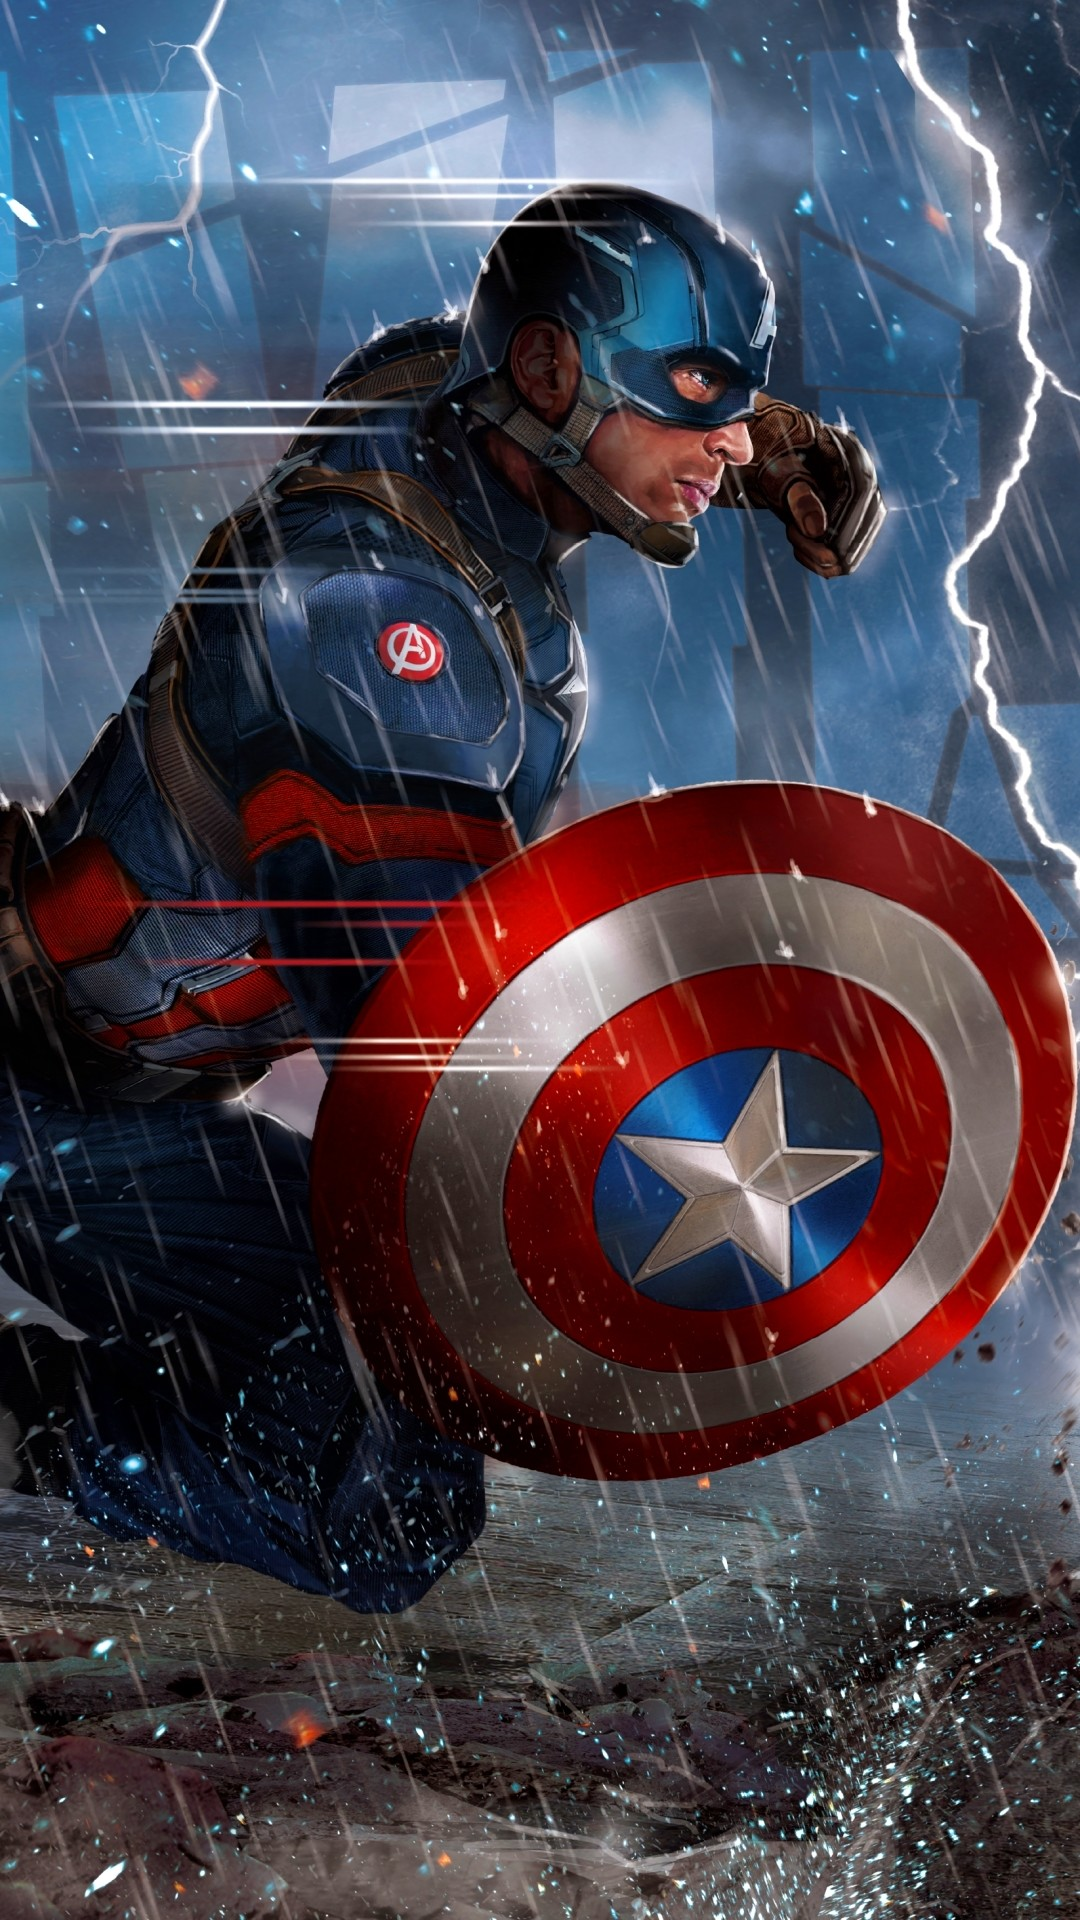 Captain america wallpapers 79 images - Captain america hd images download ...